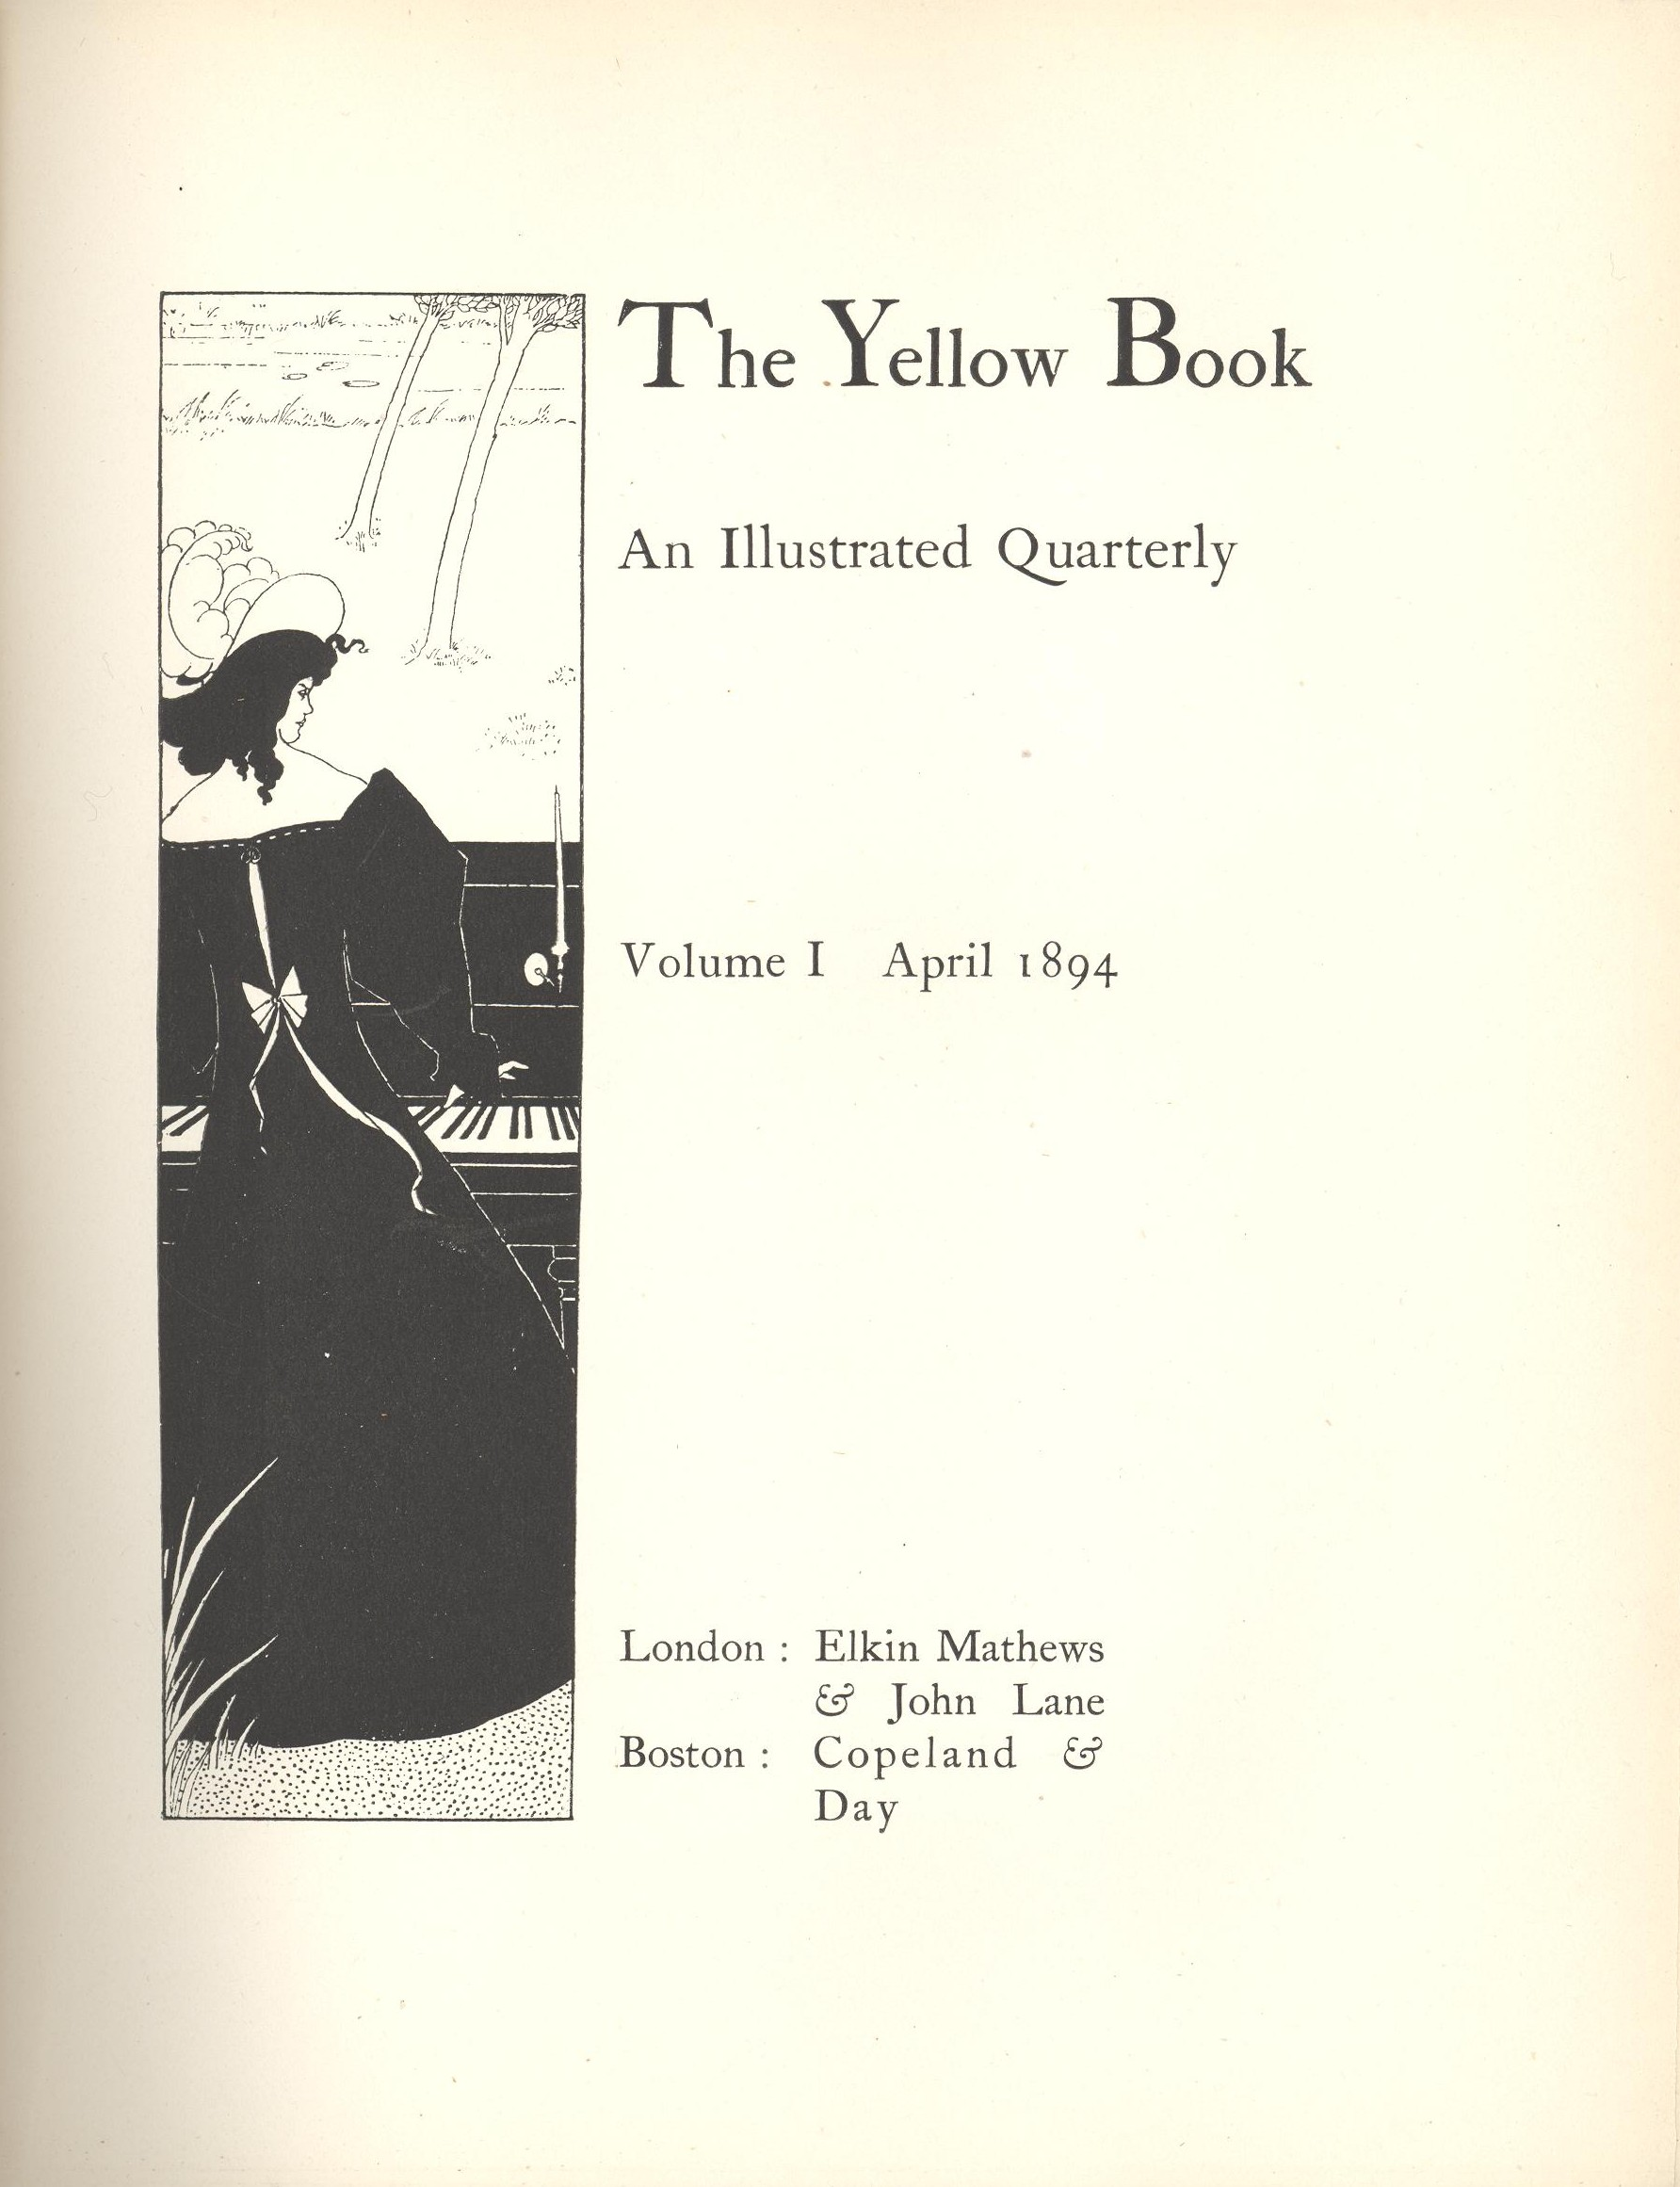 Image is in vertical frame on extreme left facing letterpress The letterpress reads The Yellow Book An Illustrated Quarterly Volume I April 1894 London Elkin Matthews & John Lane Boston Copeland & Day The image shows the back view of a woman with her face in profile She is shown full length wearing a long black dress and white feathered hat playing a piano lit by tapers outside The piano divides the image in half horizontally The lower half of the image is comprised of the piano keys and her dress The upper half of the image has two windswept trees in the middle ground and a river in background The image is vertically displayed